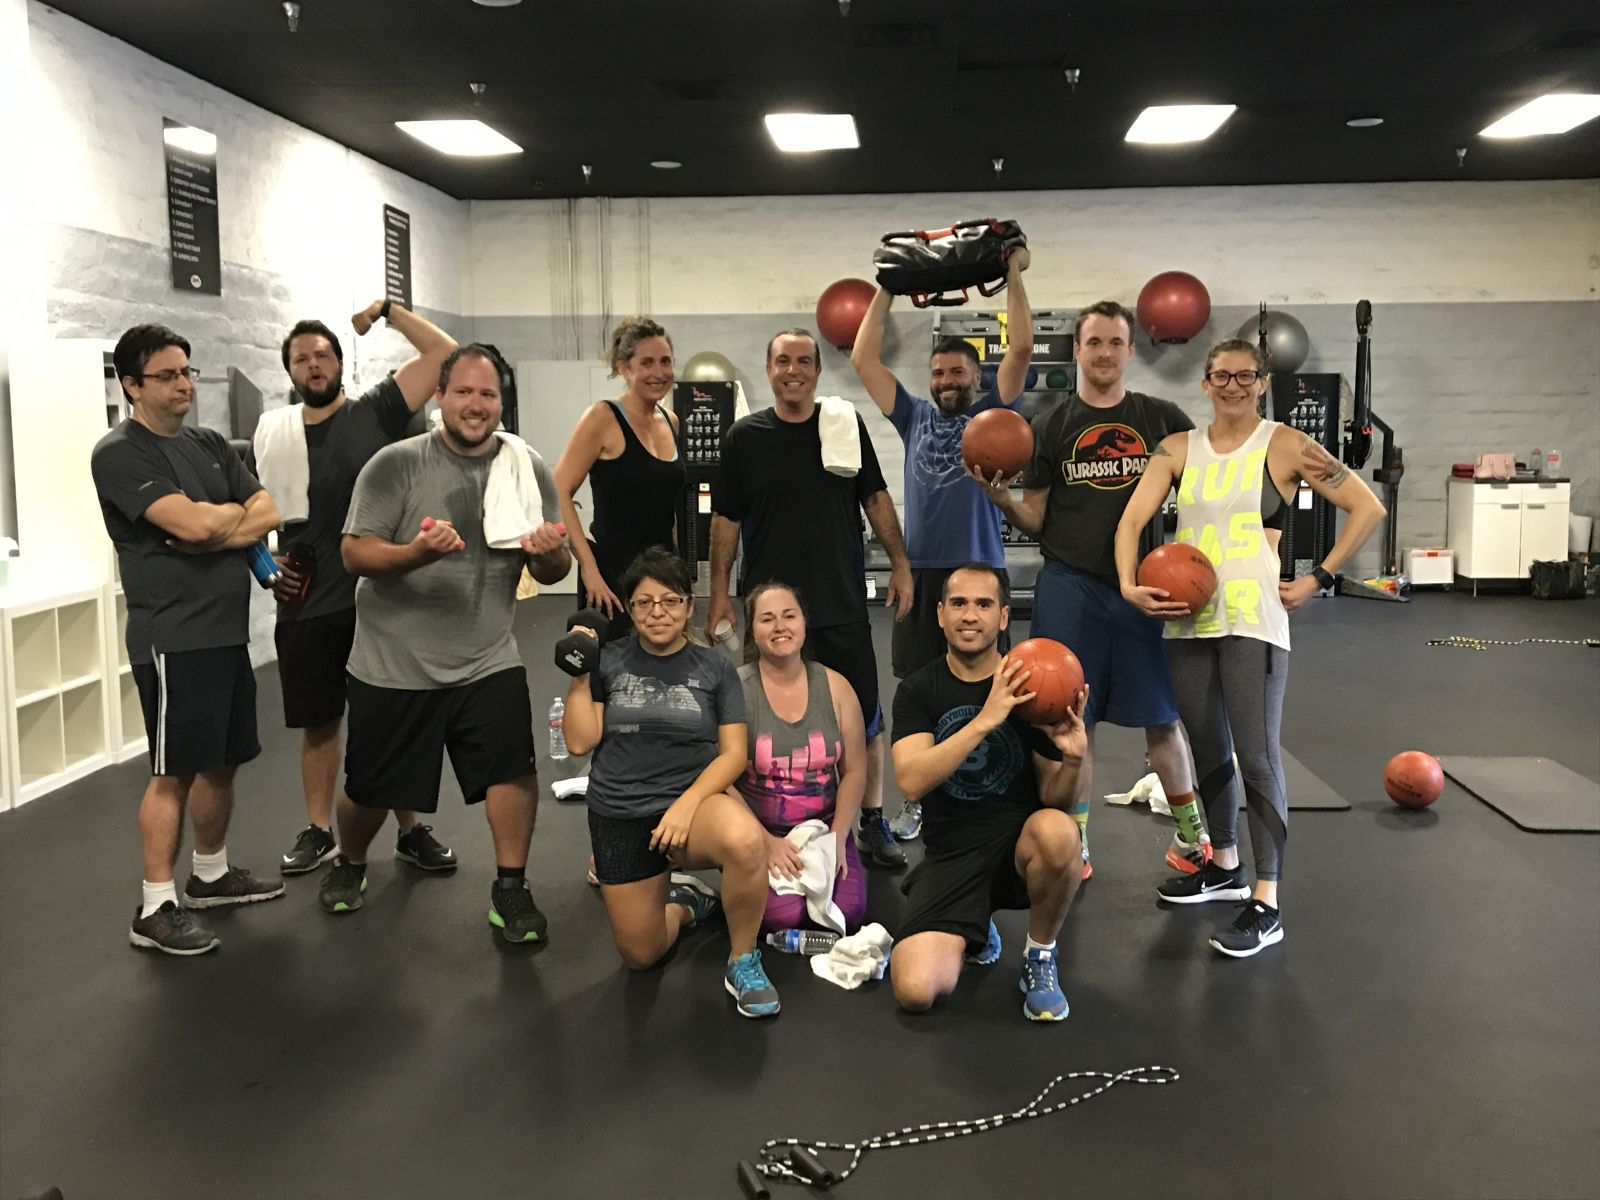 this is an image of people who do encino group training and northridge group training